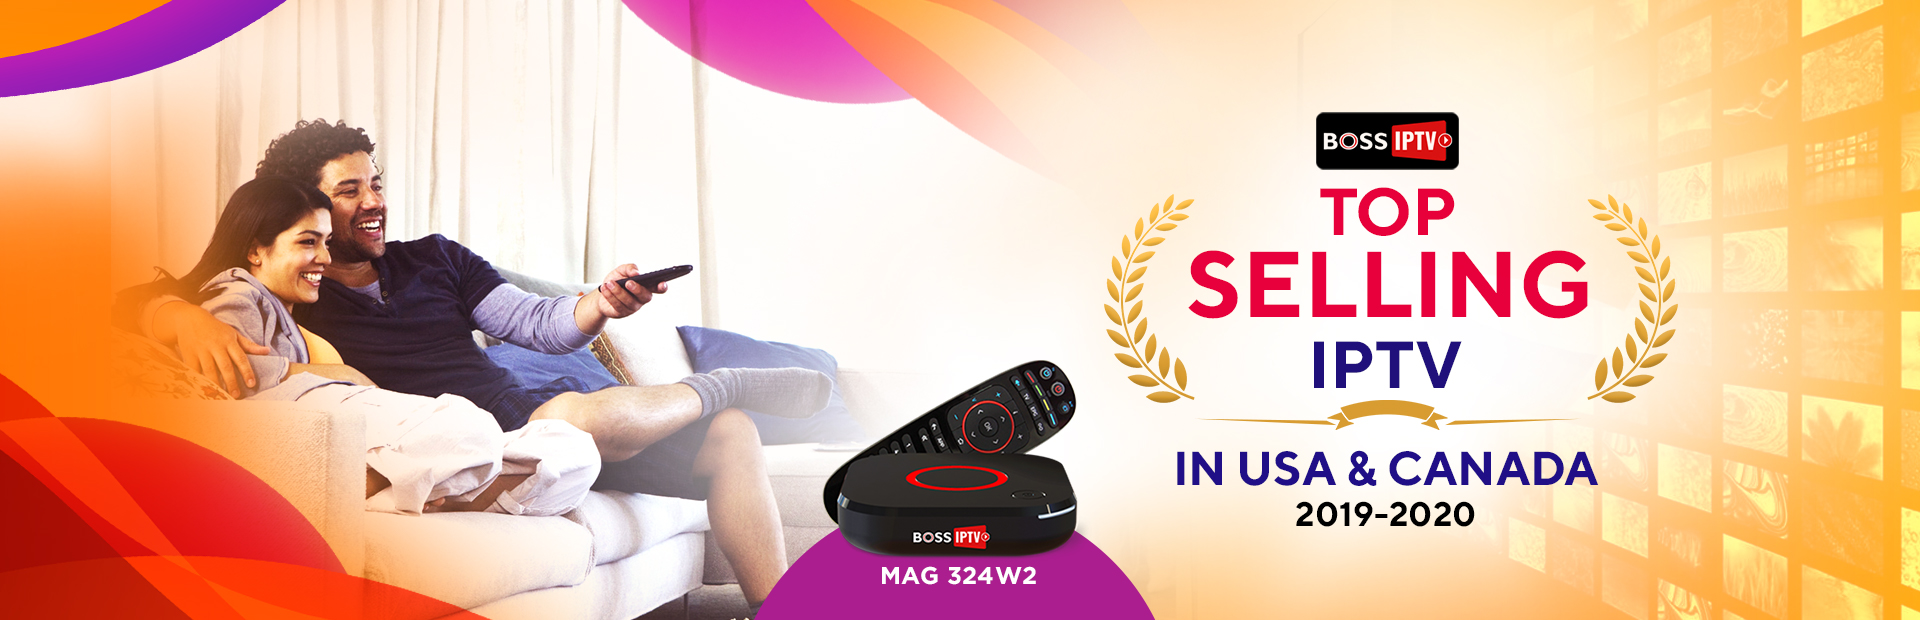 Top Selling IPTV in USA & CANADA